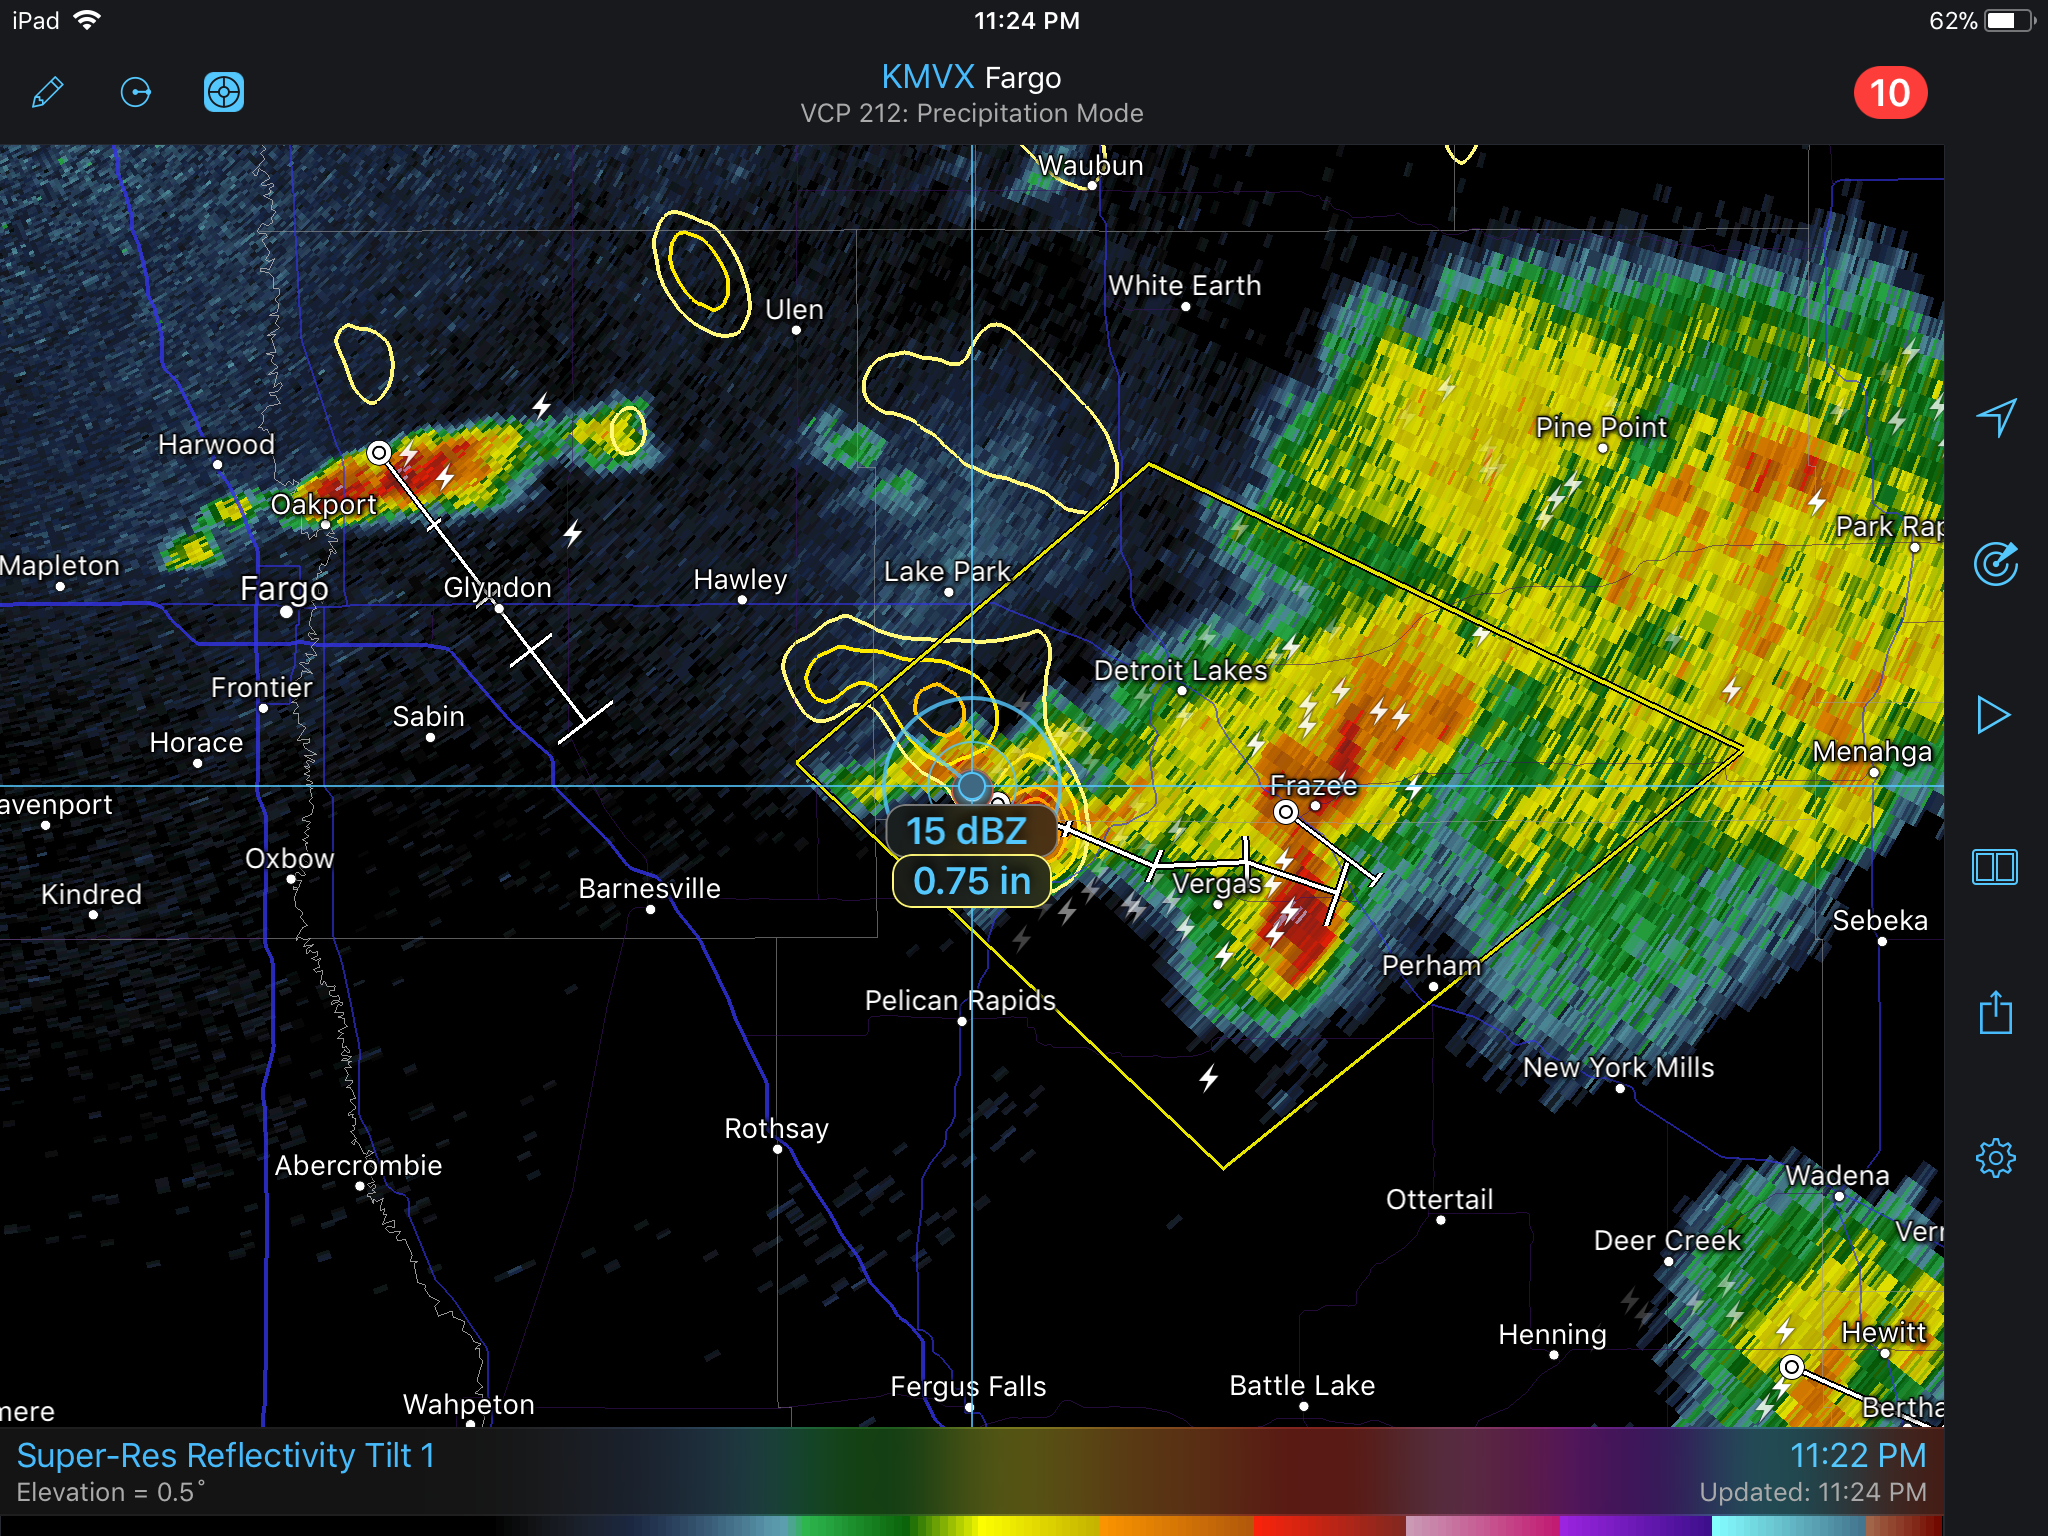 Storm Tracks and Hail Contours in RadarScope